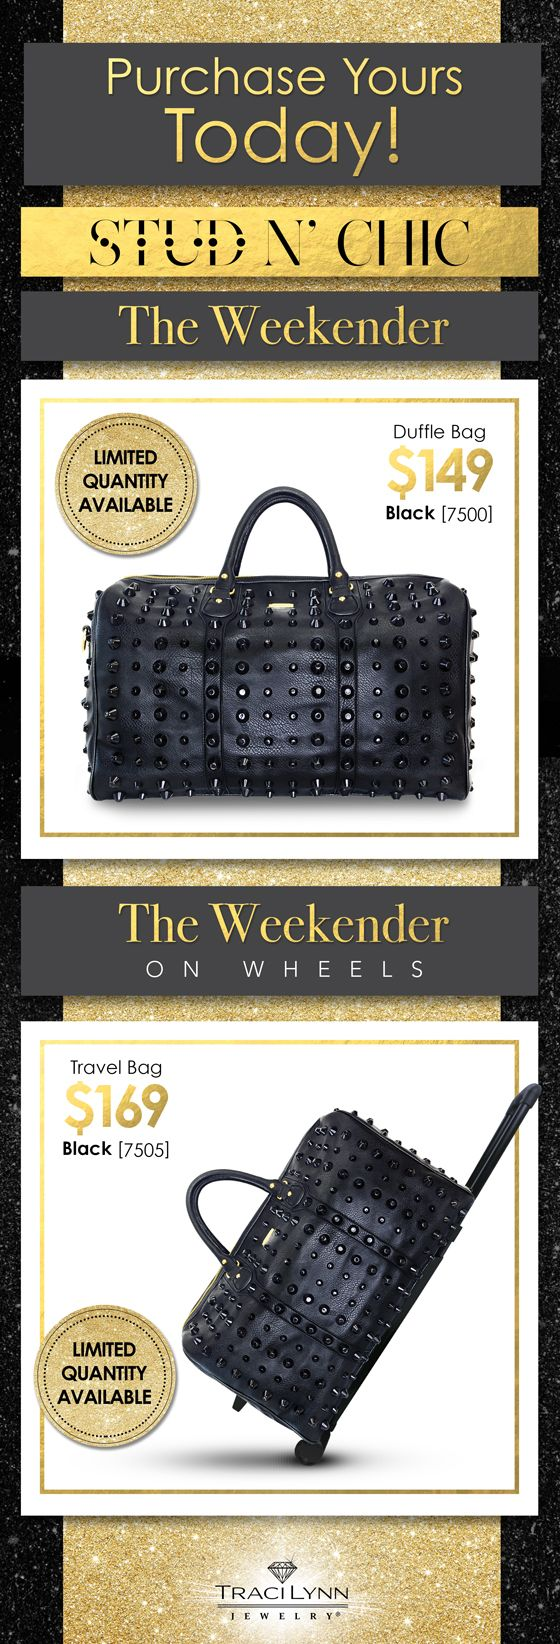 Traci Lynn Fashion Jewelry THE WEEKENDER!!! Great for Traveling, Sport Bag, Business Supplies Limited Quantity Www.tracilynnjewelry.net/party/BlingSanta